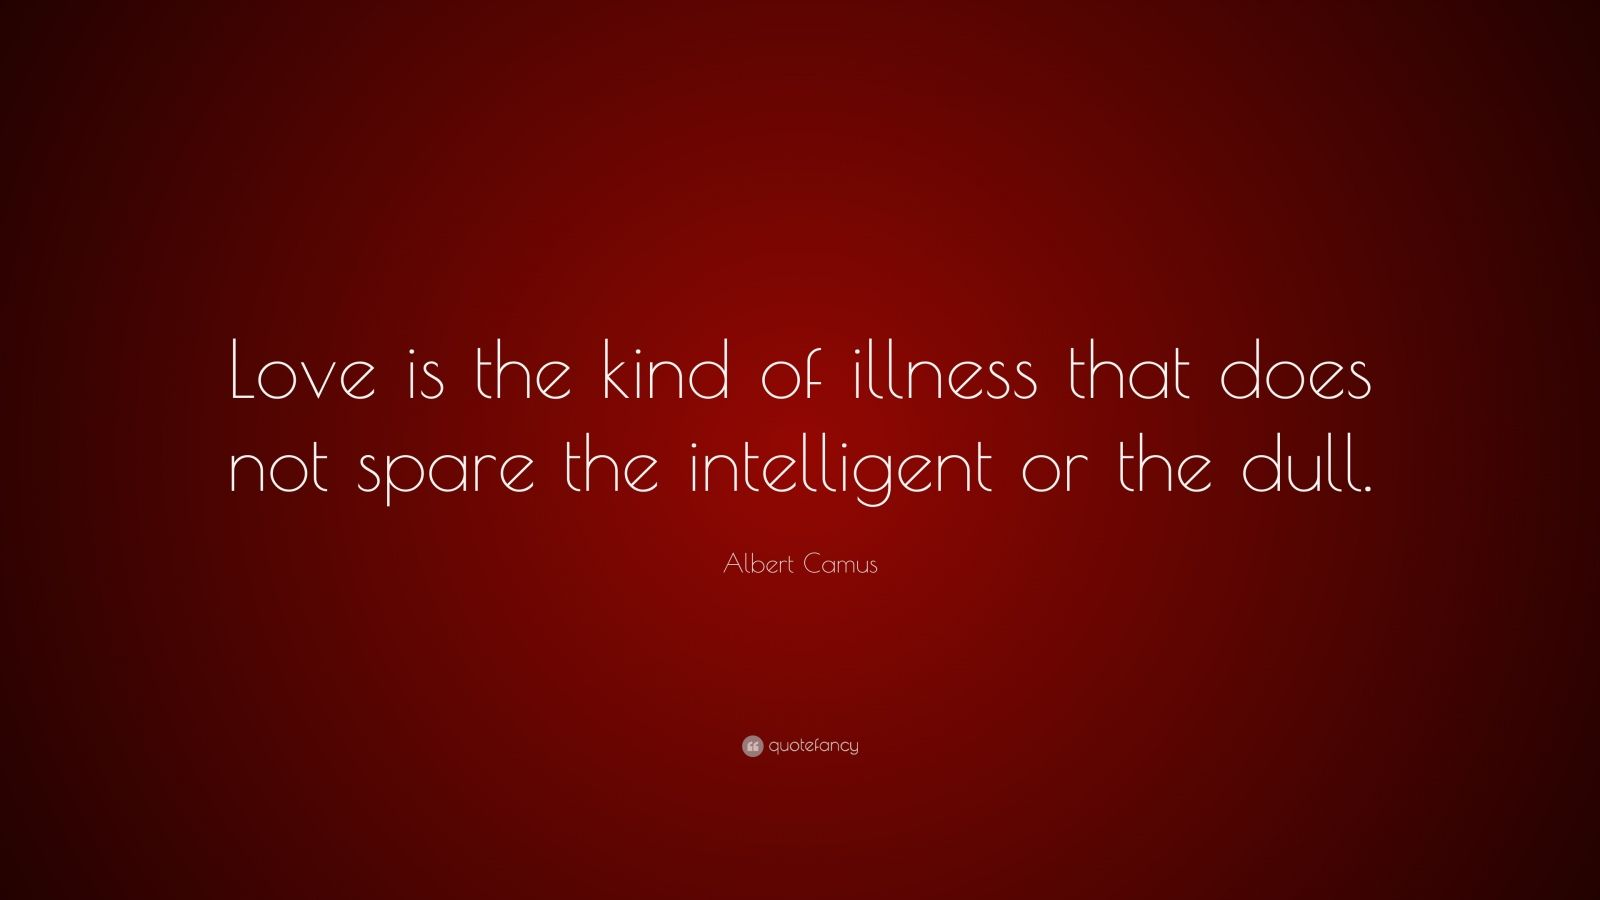 """Albert Camus Quote: """"Love is the kind of illness that does not spare the intelligent or the dull."""""""